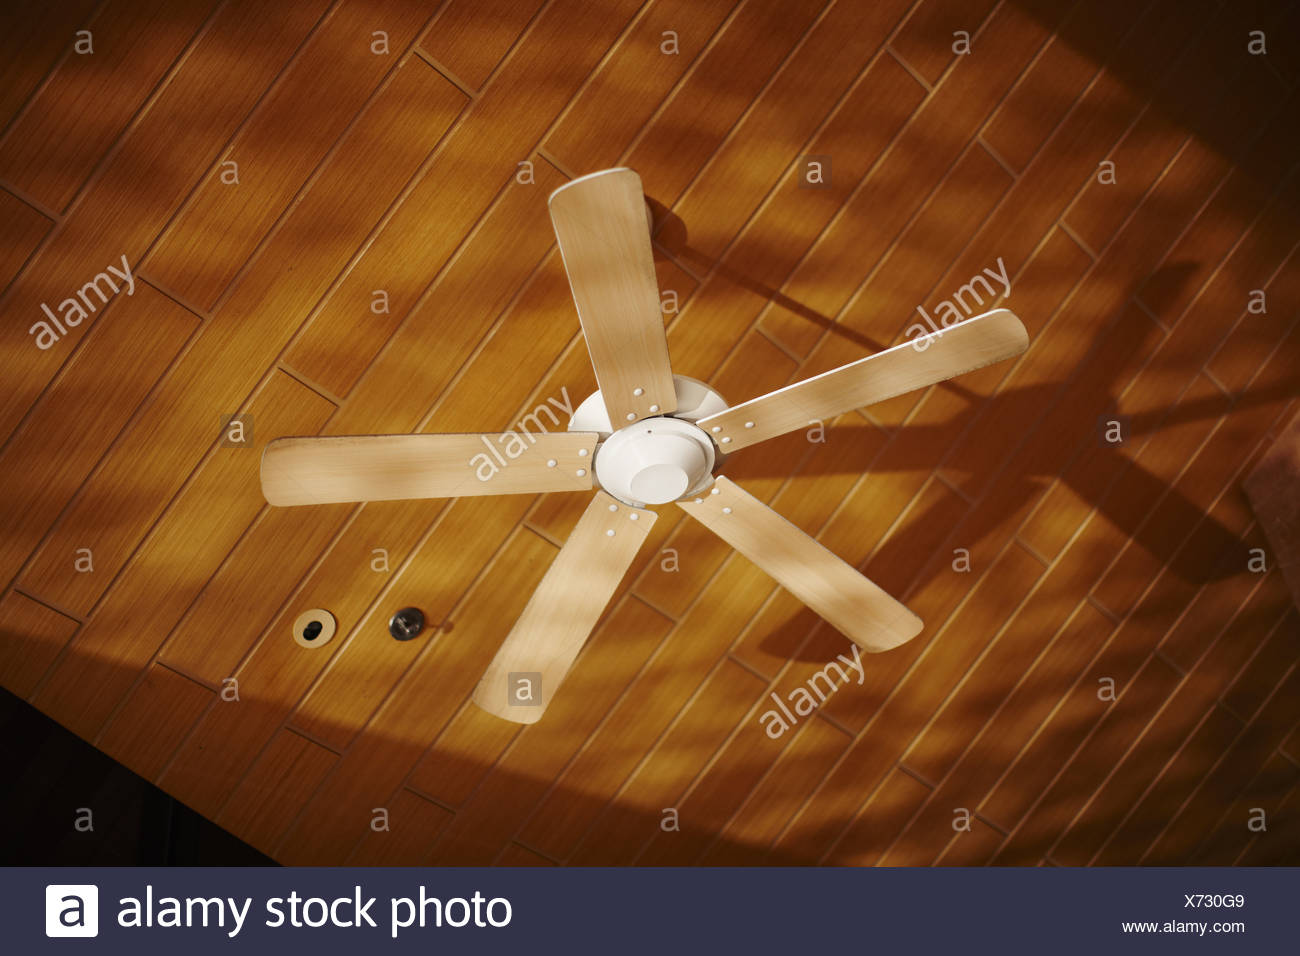 Wooden ceiling fan casting shadows Stock Photo